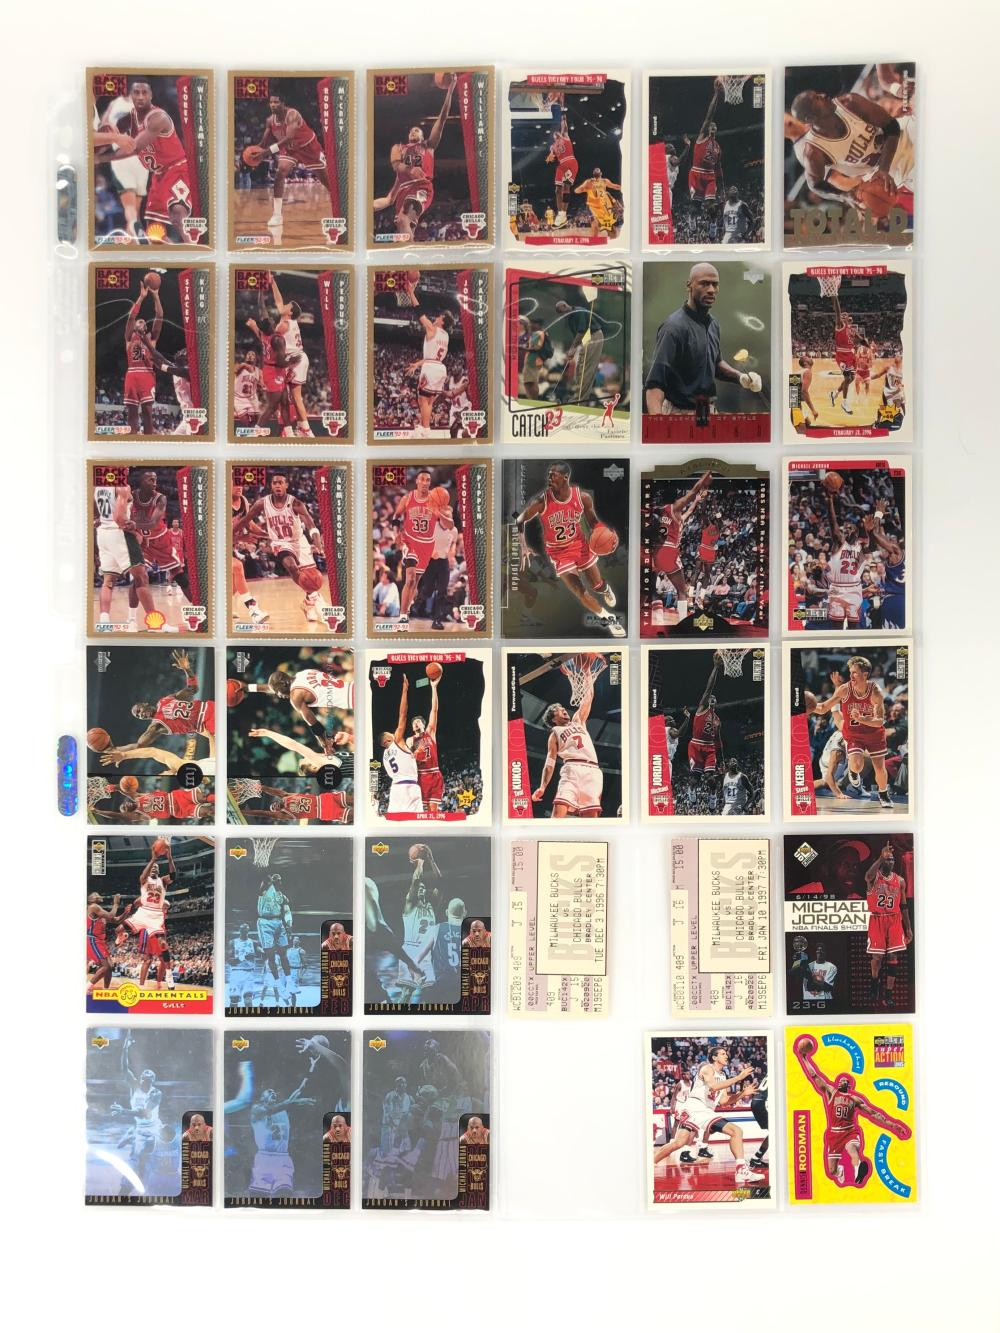 LOT OF 21 CHICAGO BULLS TRADING CARDS AND MORE